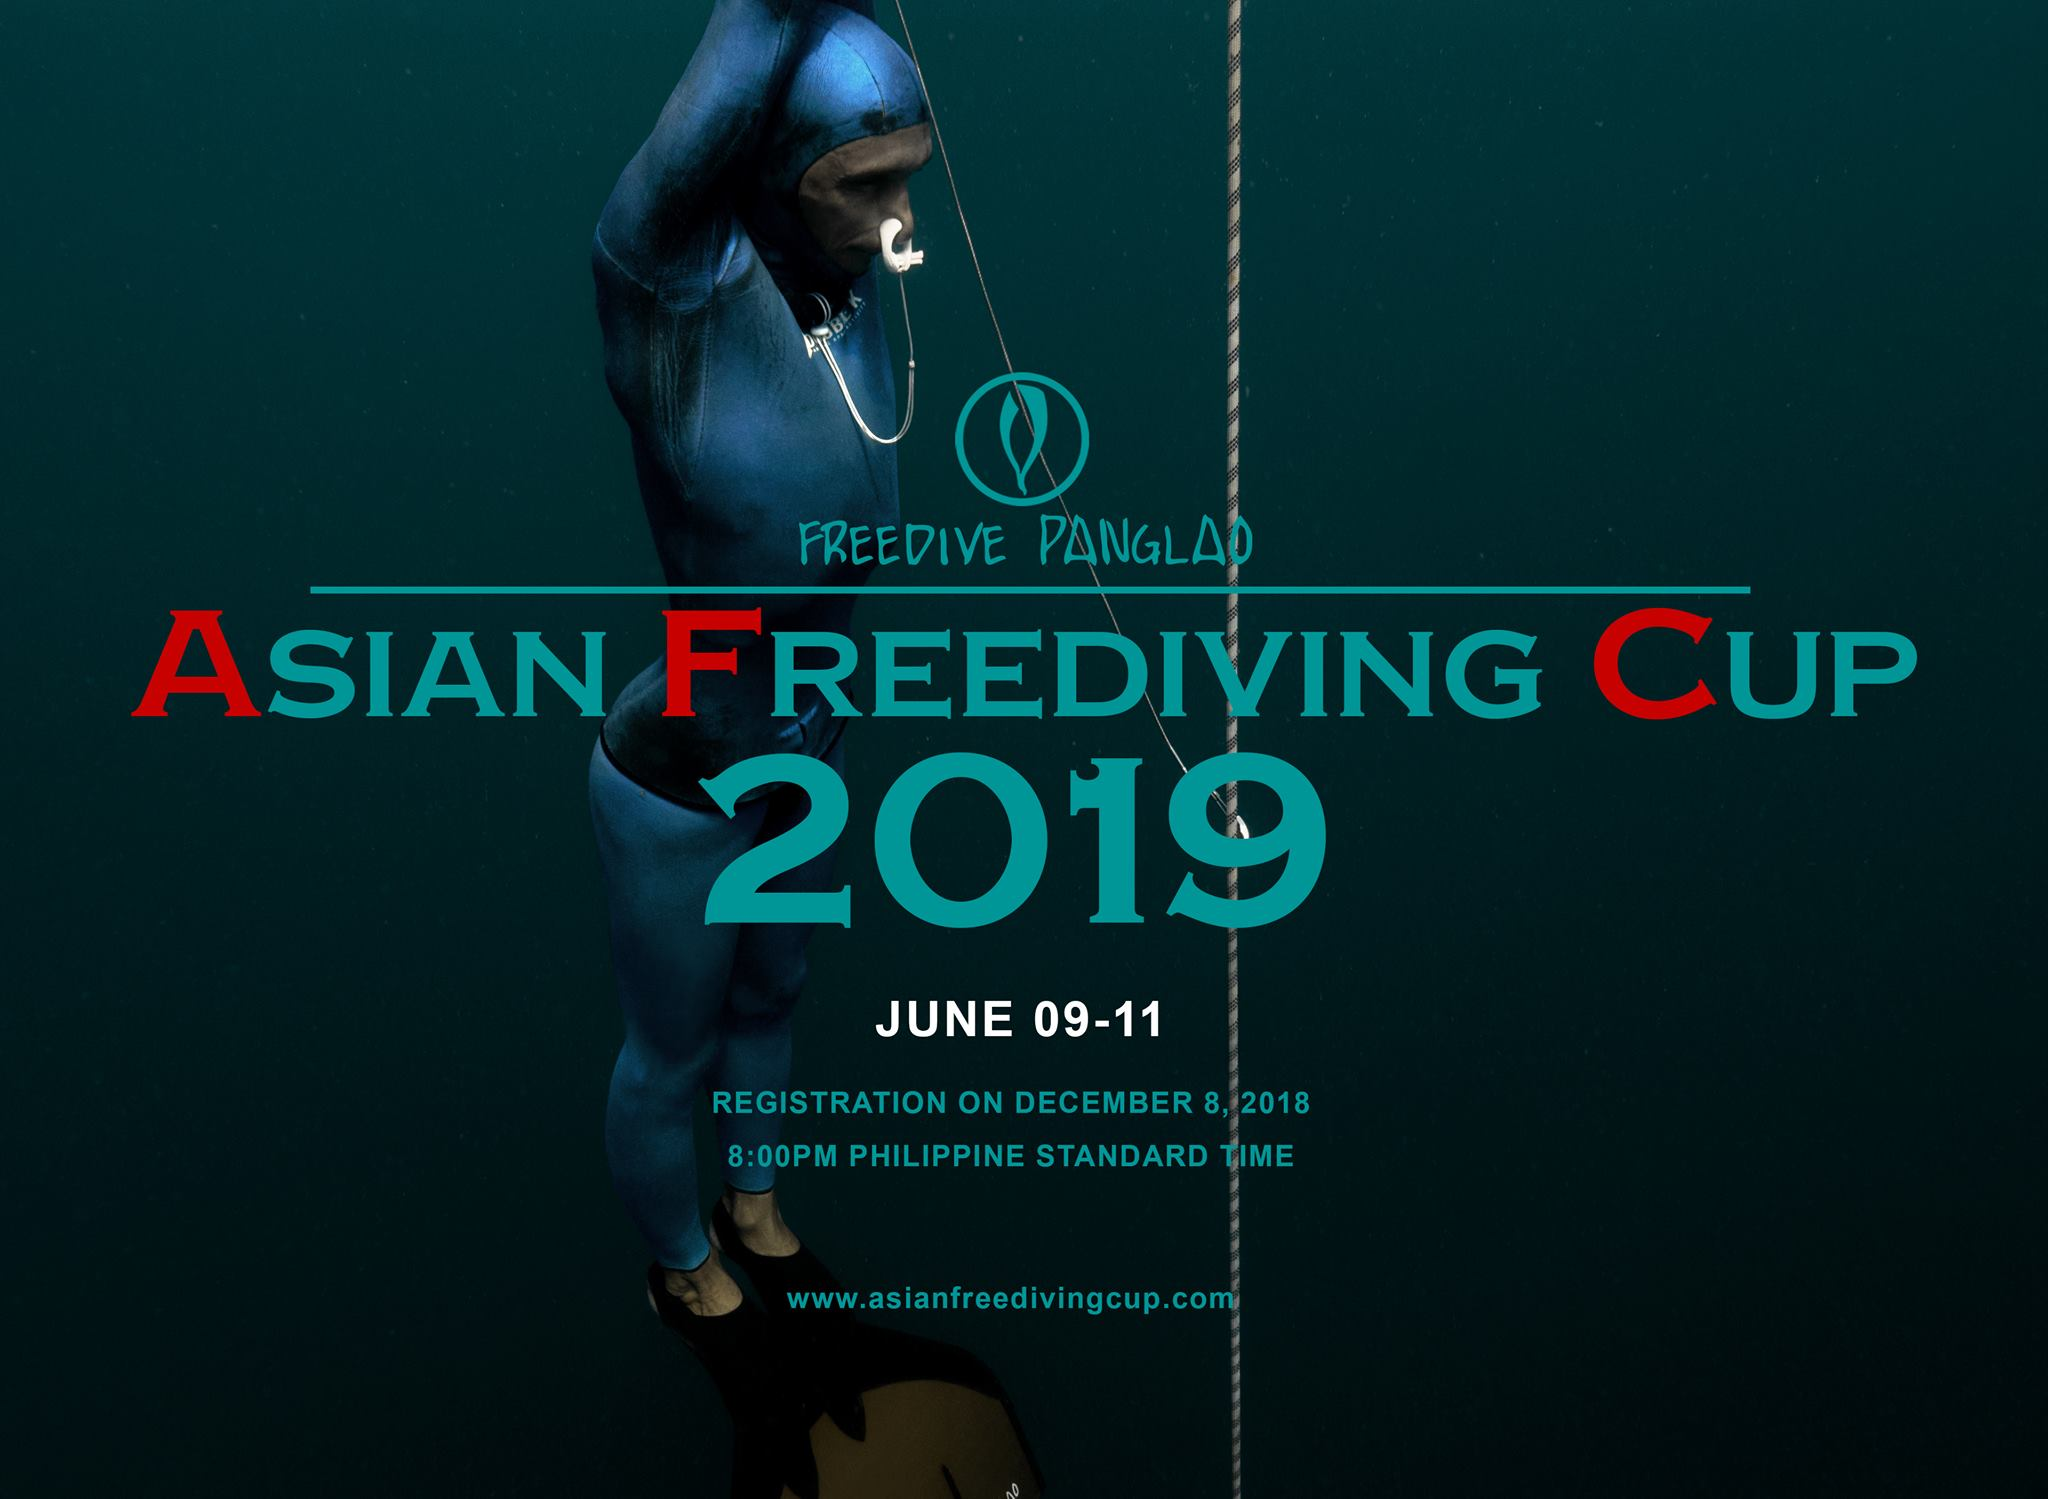 Asian Freediving Cup 2019